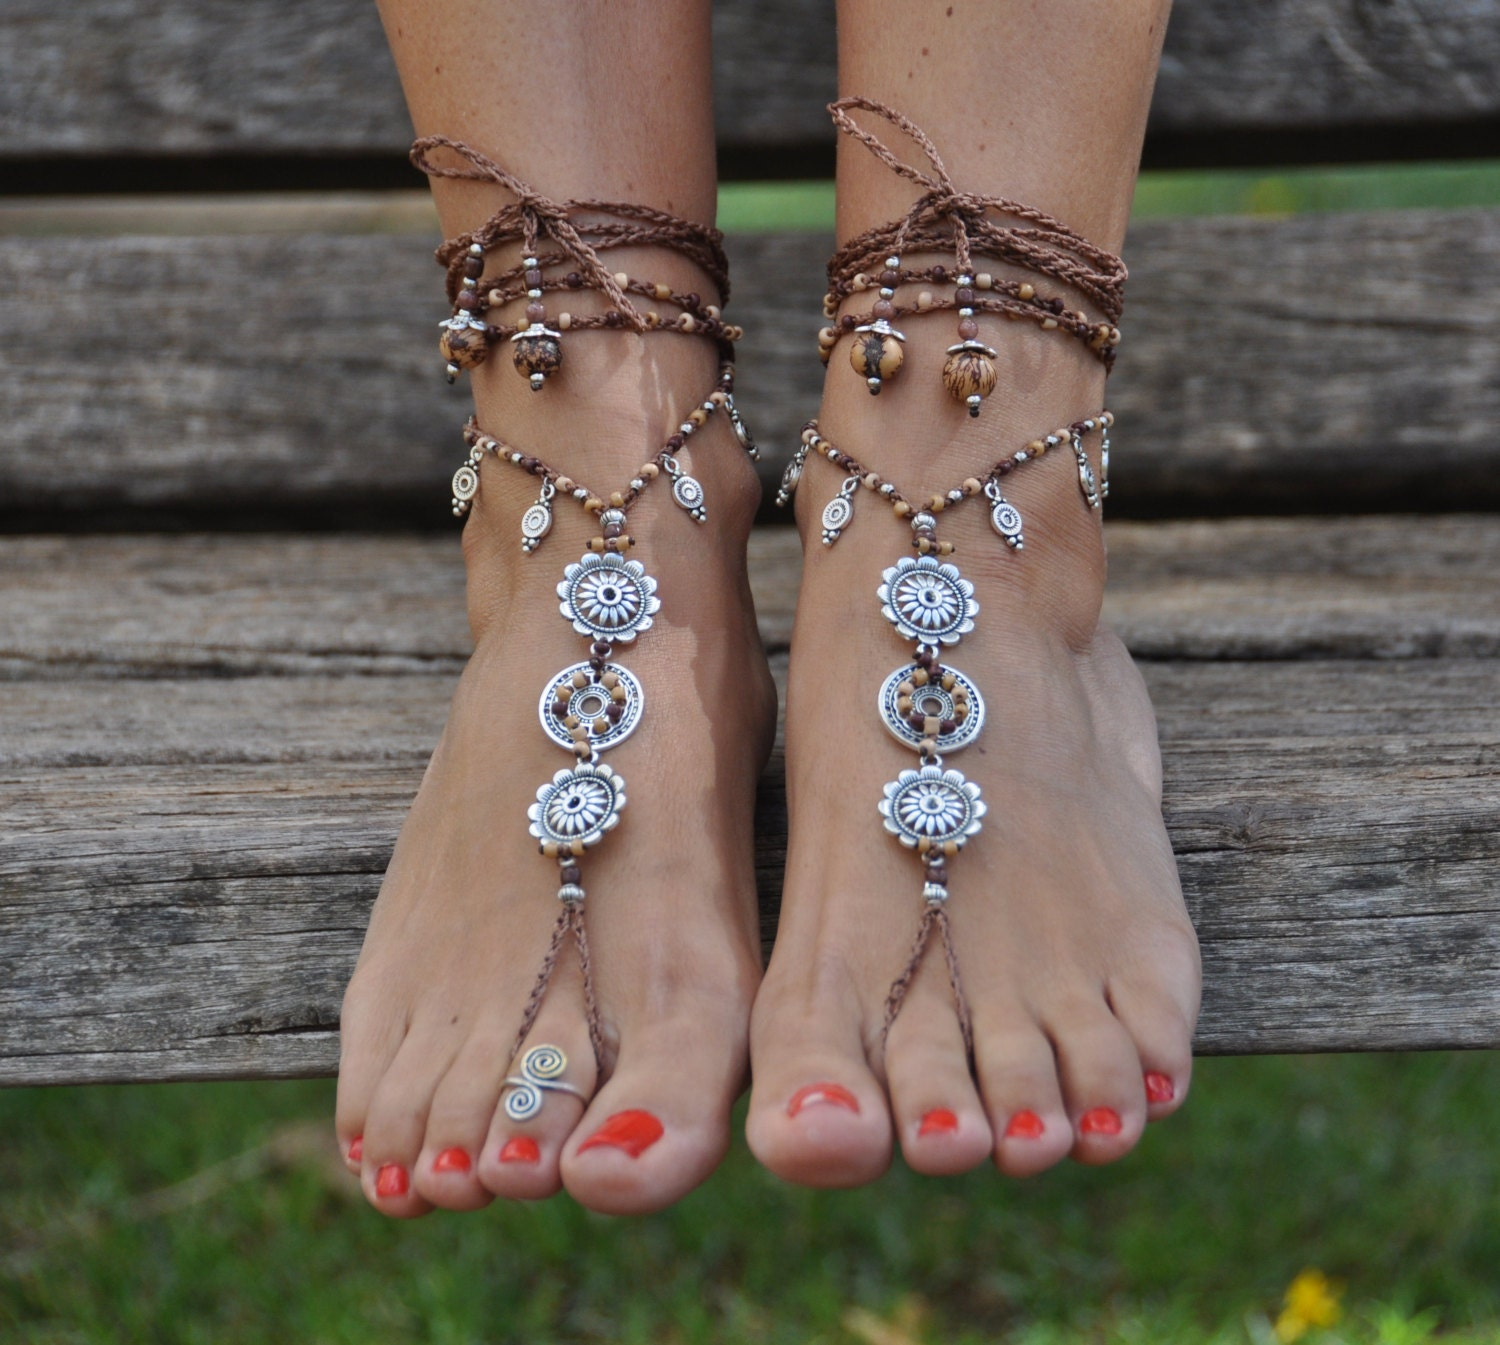 Earth Mandala Barefoot Sandals Foot Jewelry Hippie Sandals Toe